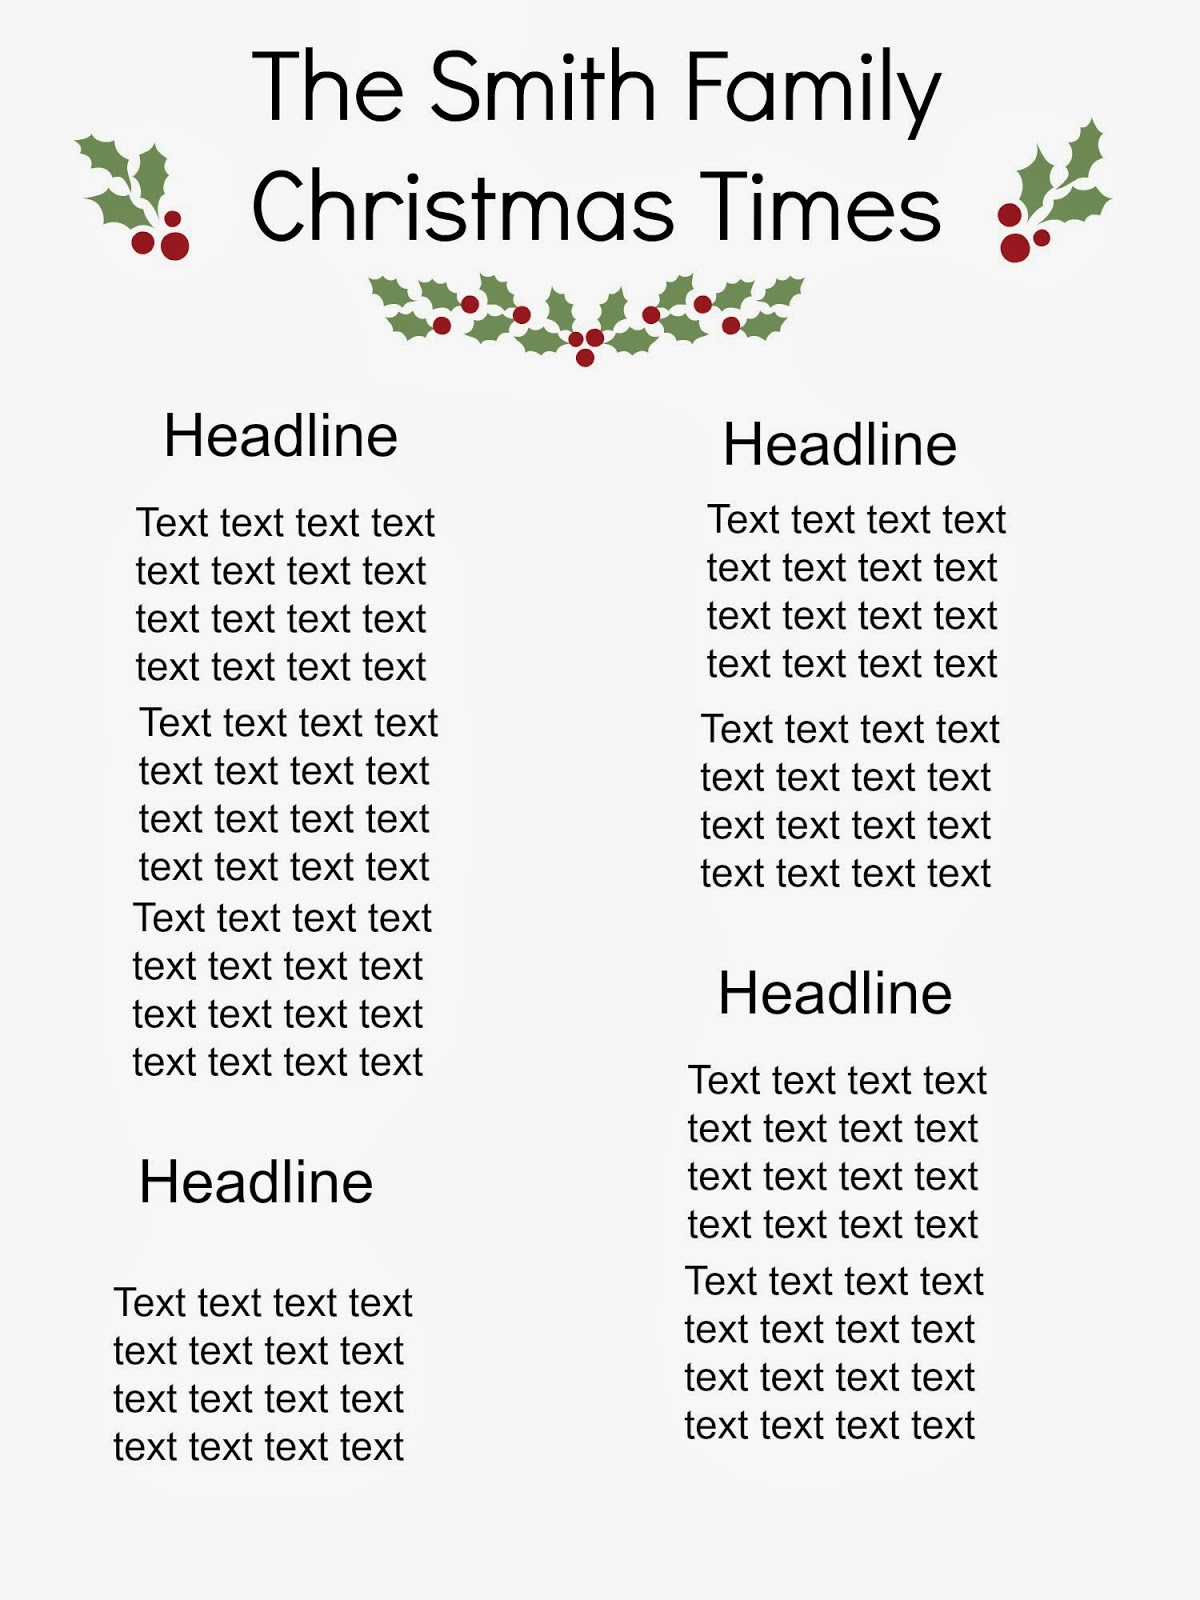 Tips for sending the best christmas letter ever tips for sending the best christmas letter ever aljukfo Gallery